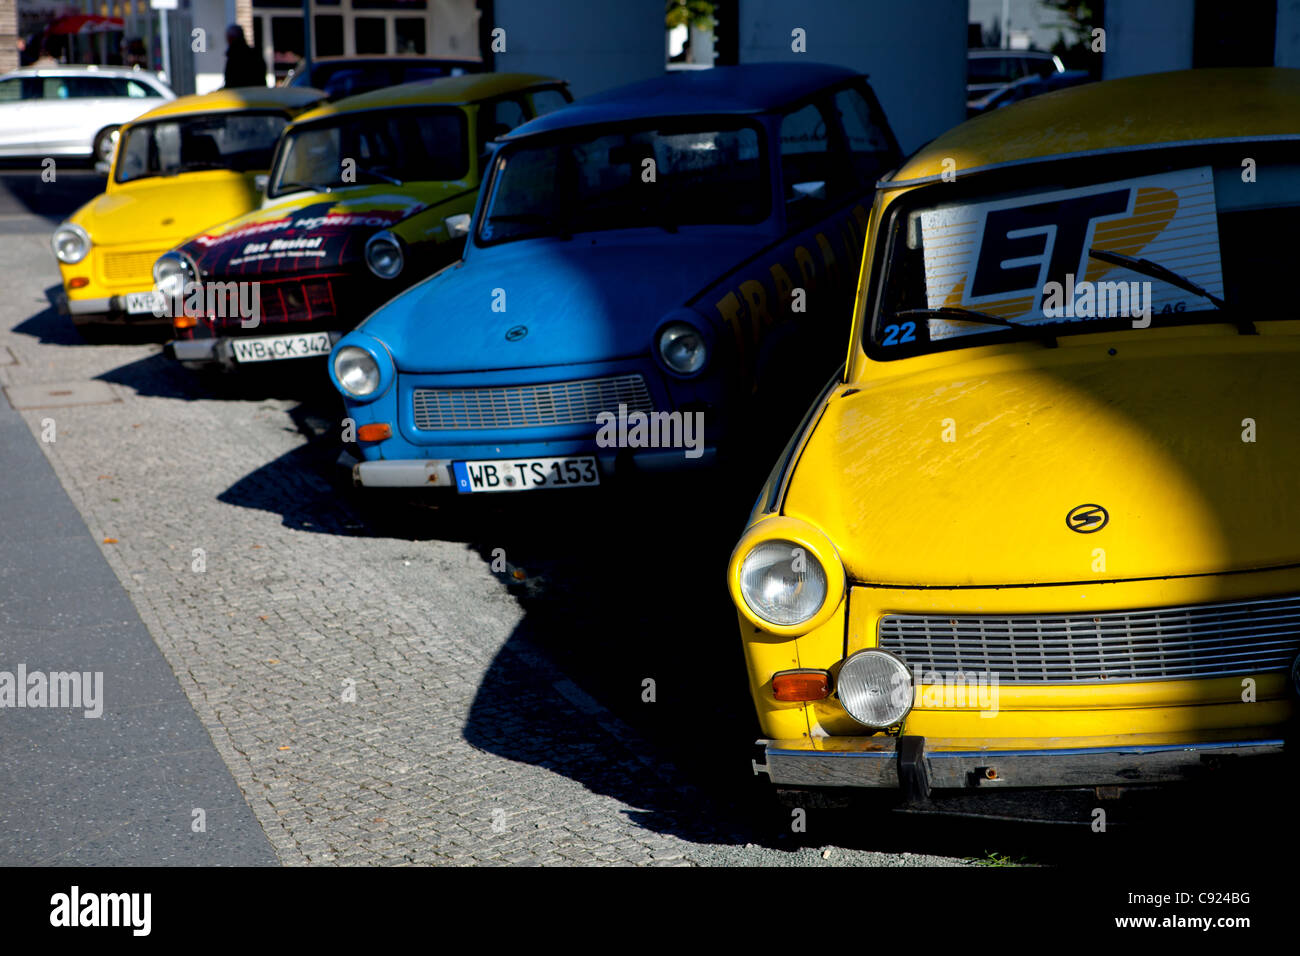 trabant car stockfotos trabant car bilder alamy. Black Bedroom Furniture Sets. Home Design Ideas